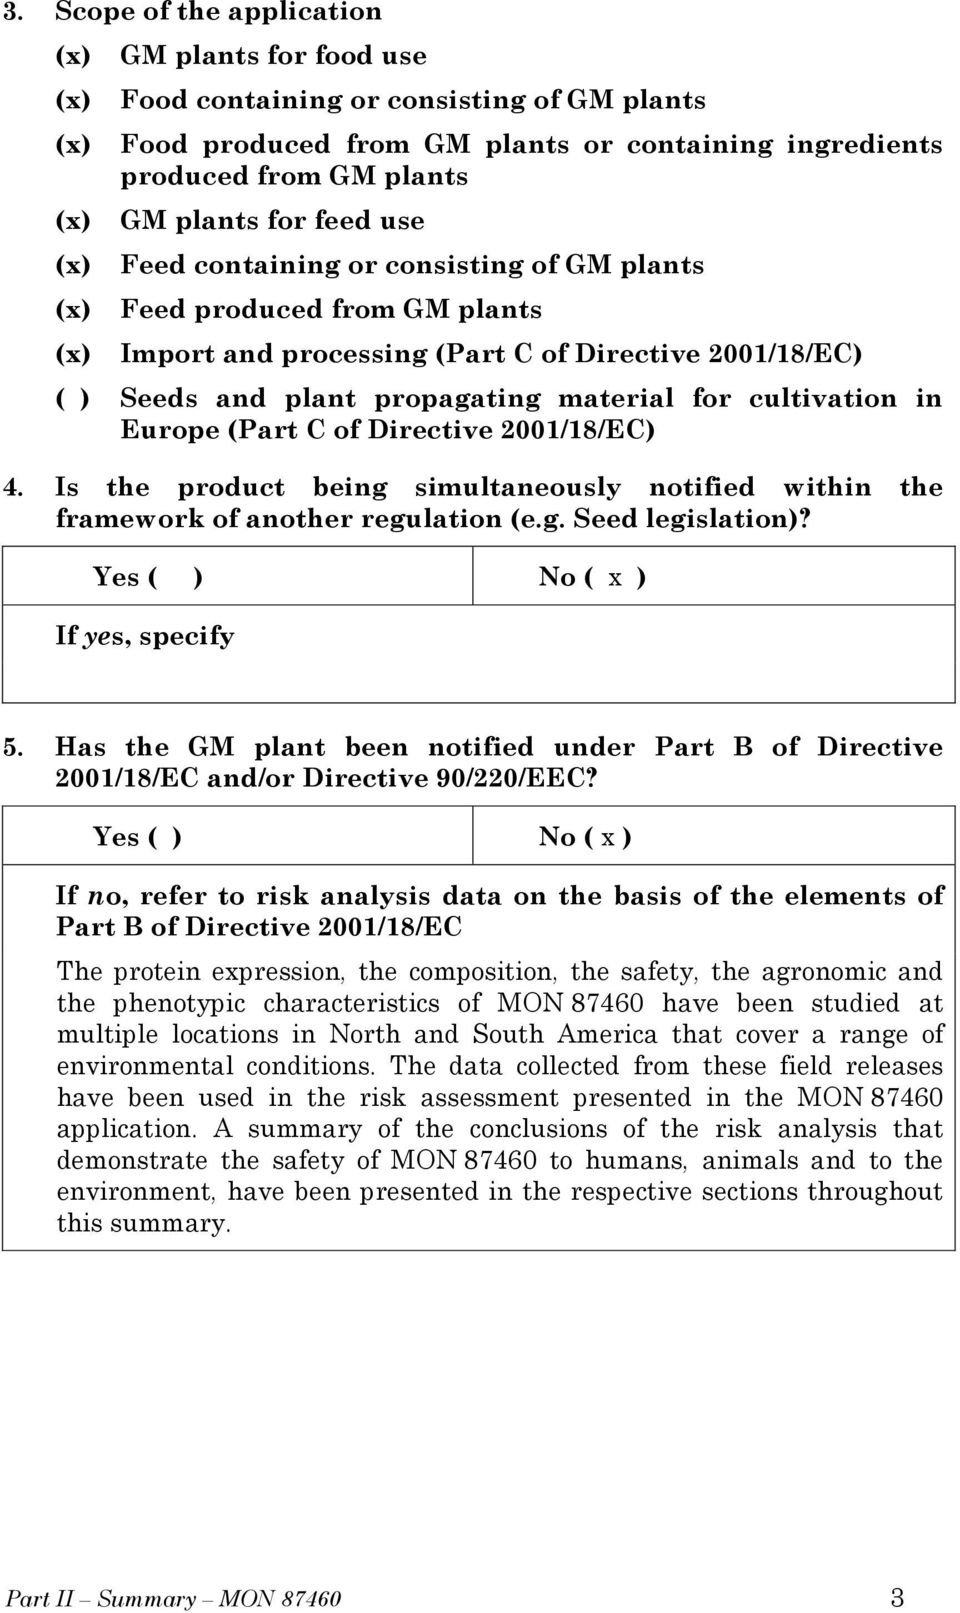 cultivation in Europe (Part C of Directive 2001/18/EC) 4. Is the product being simultaneously notified within the framework of another regulation (e.g. Seed legislation)?